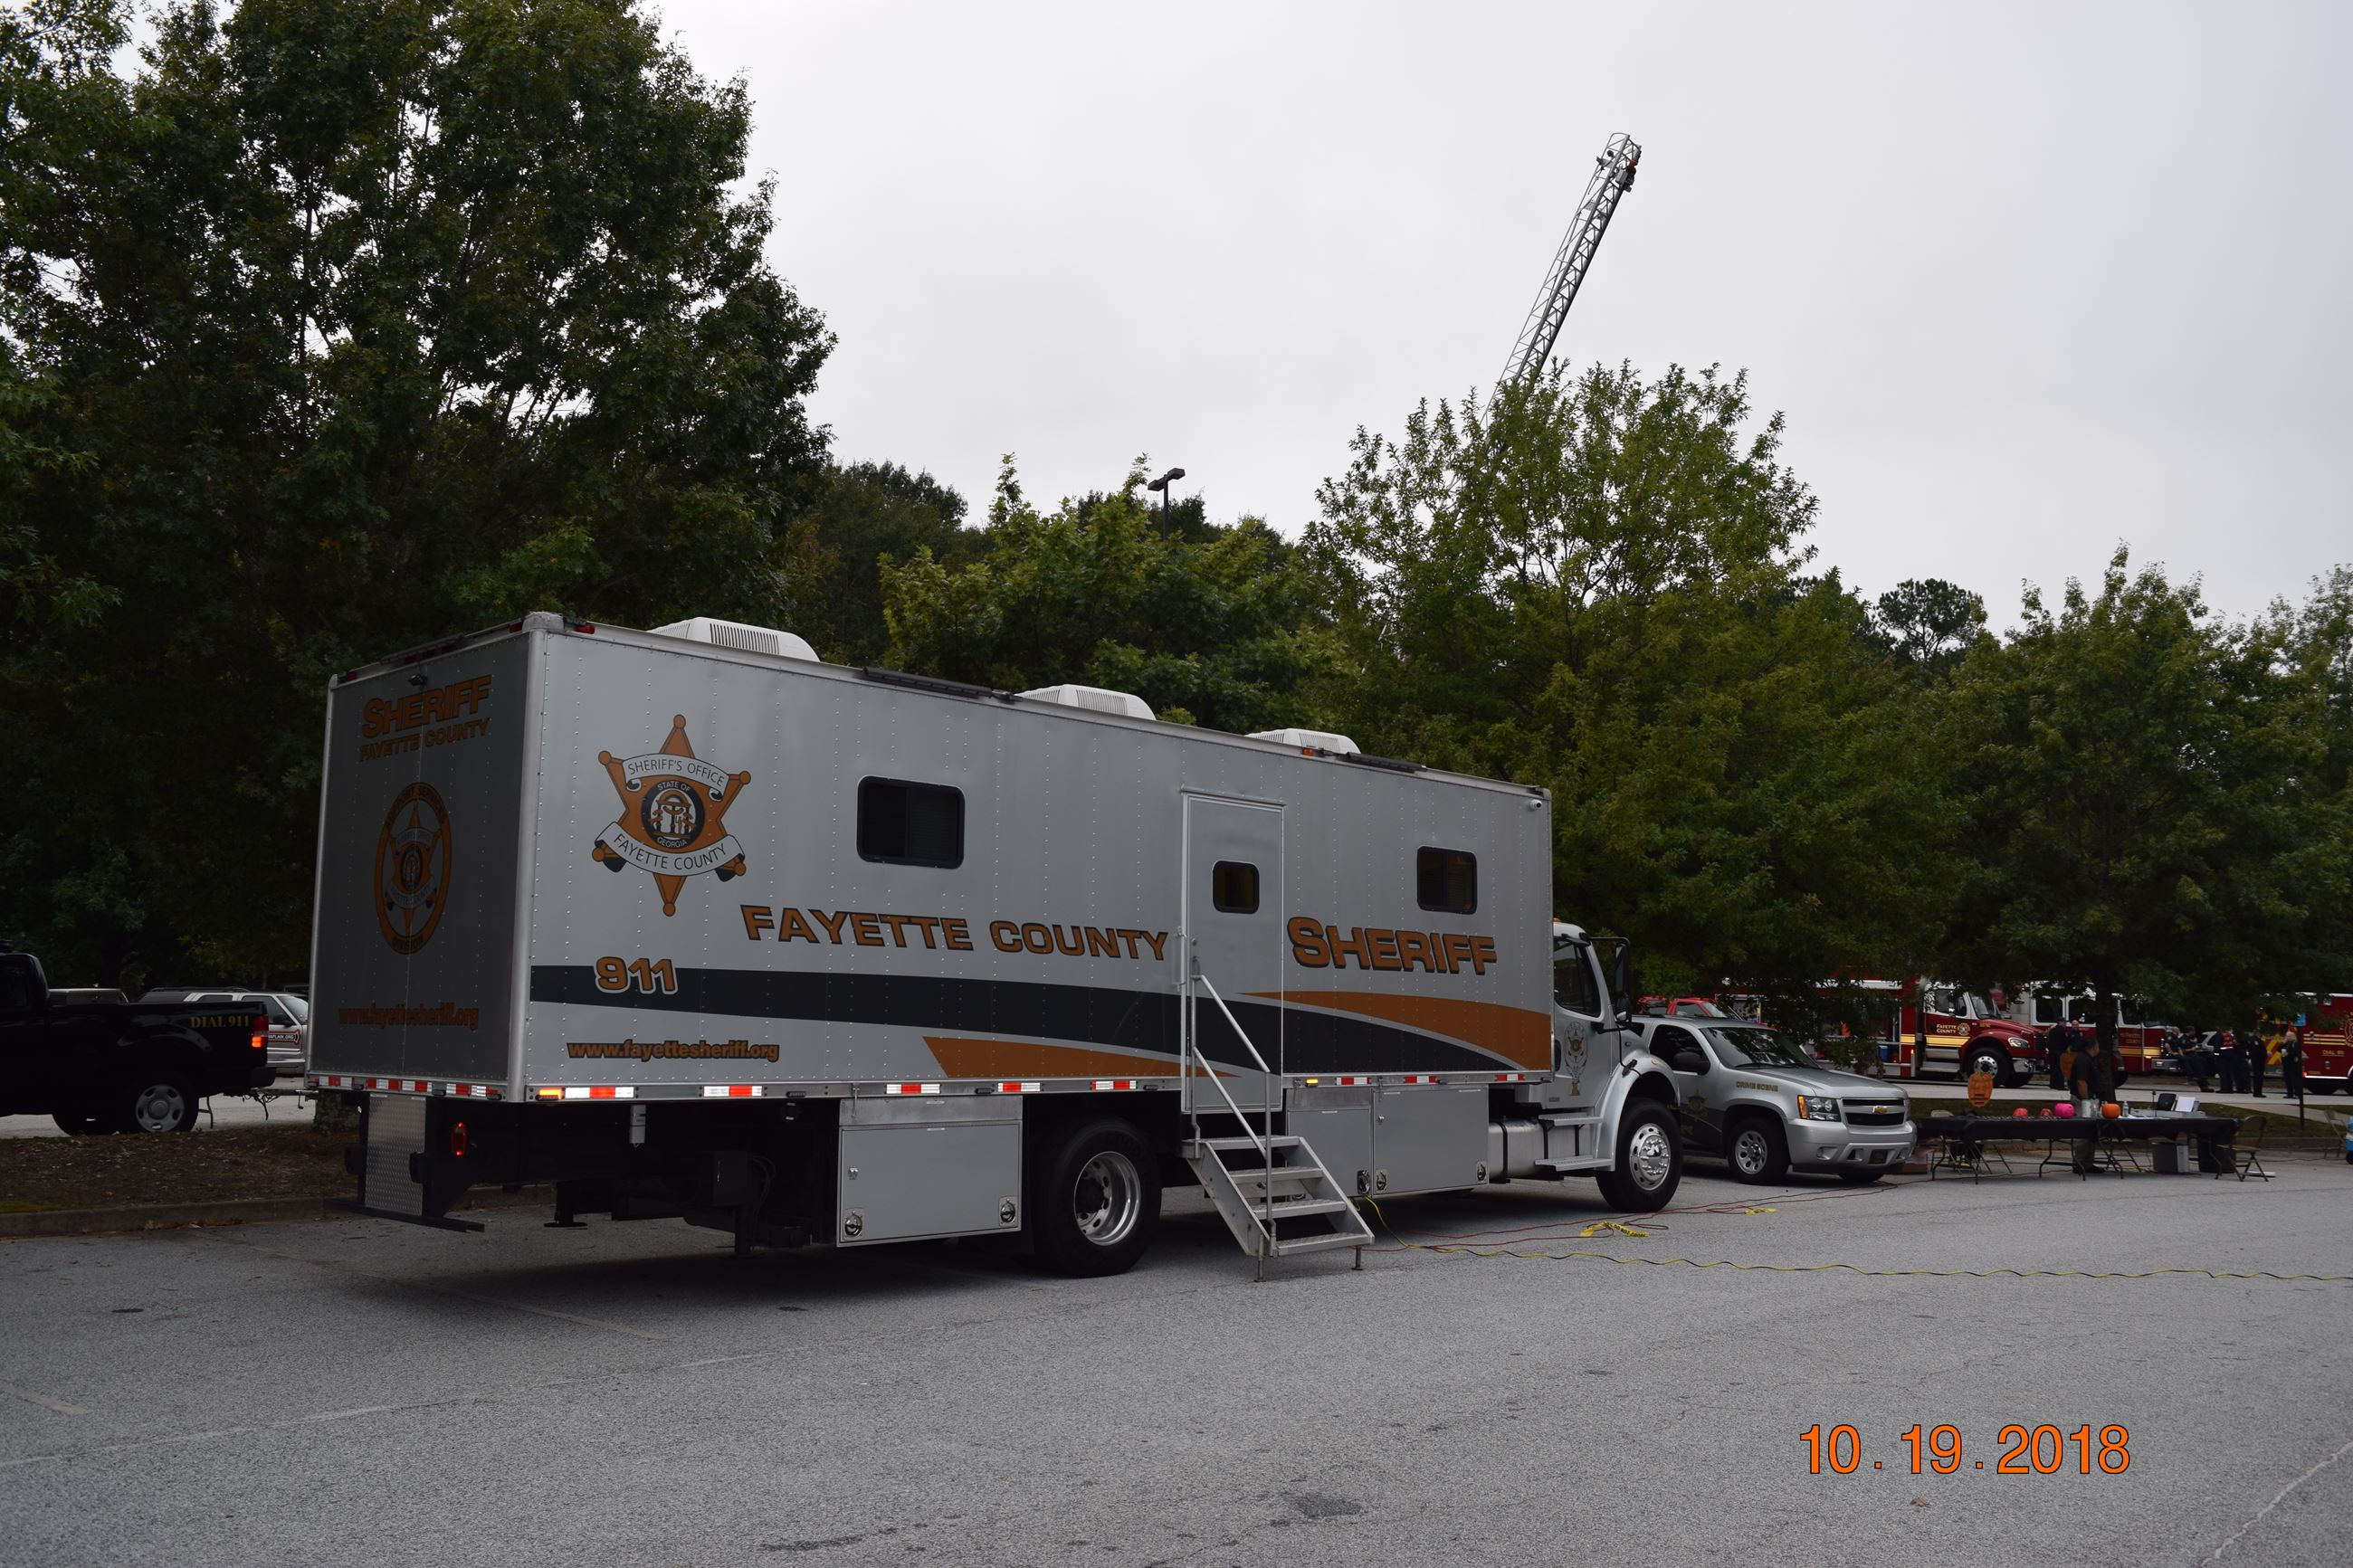 Sheriff ATLAS vehicle